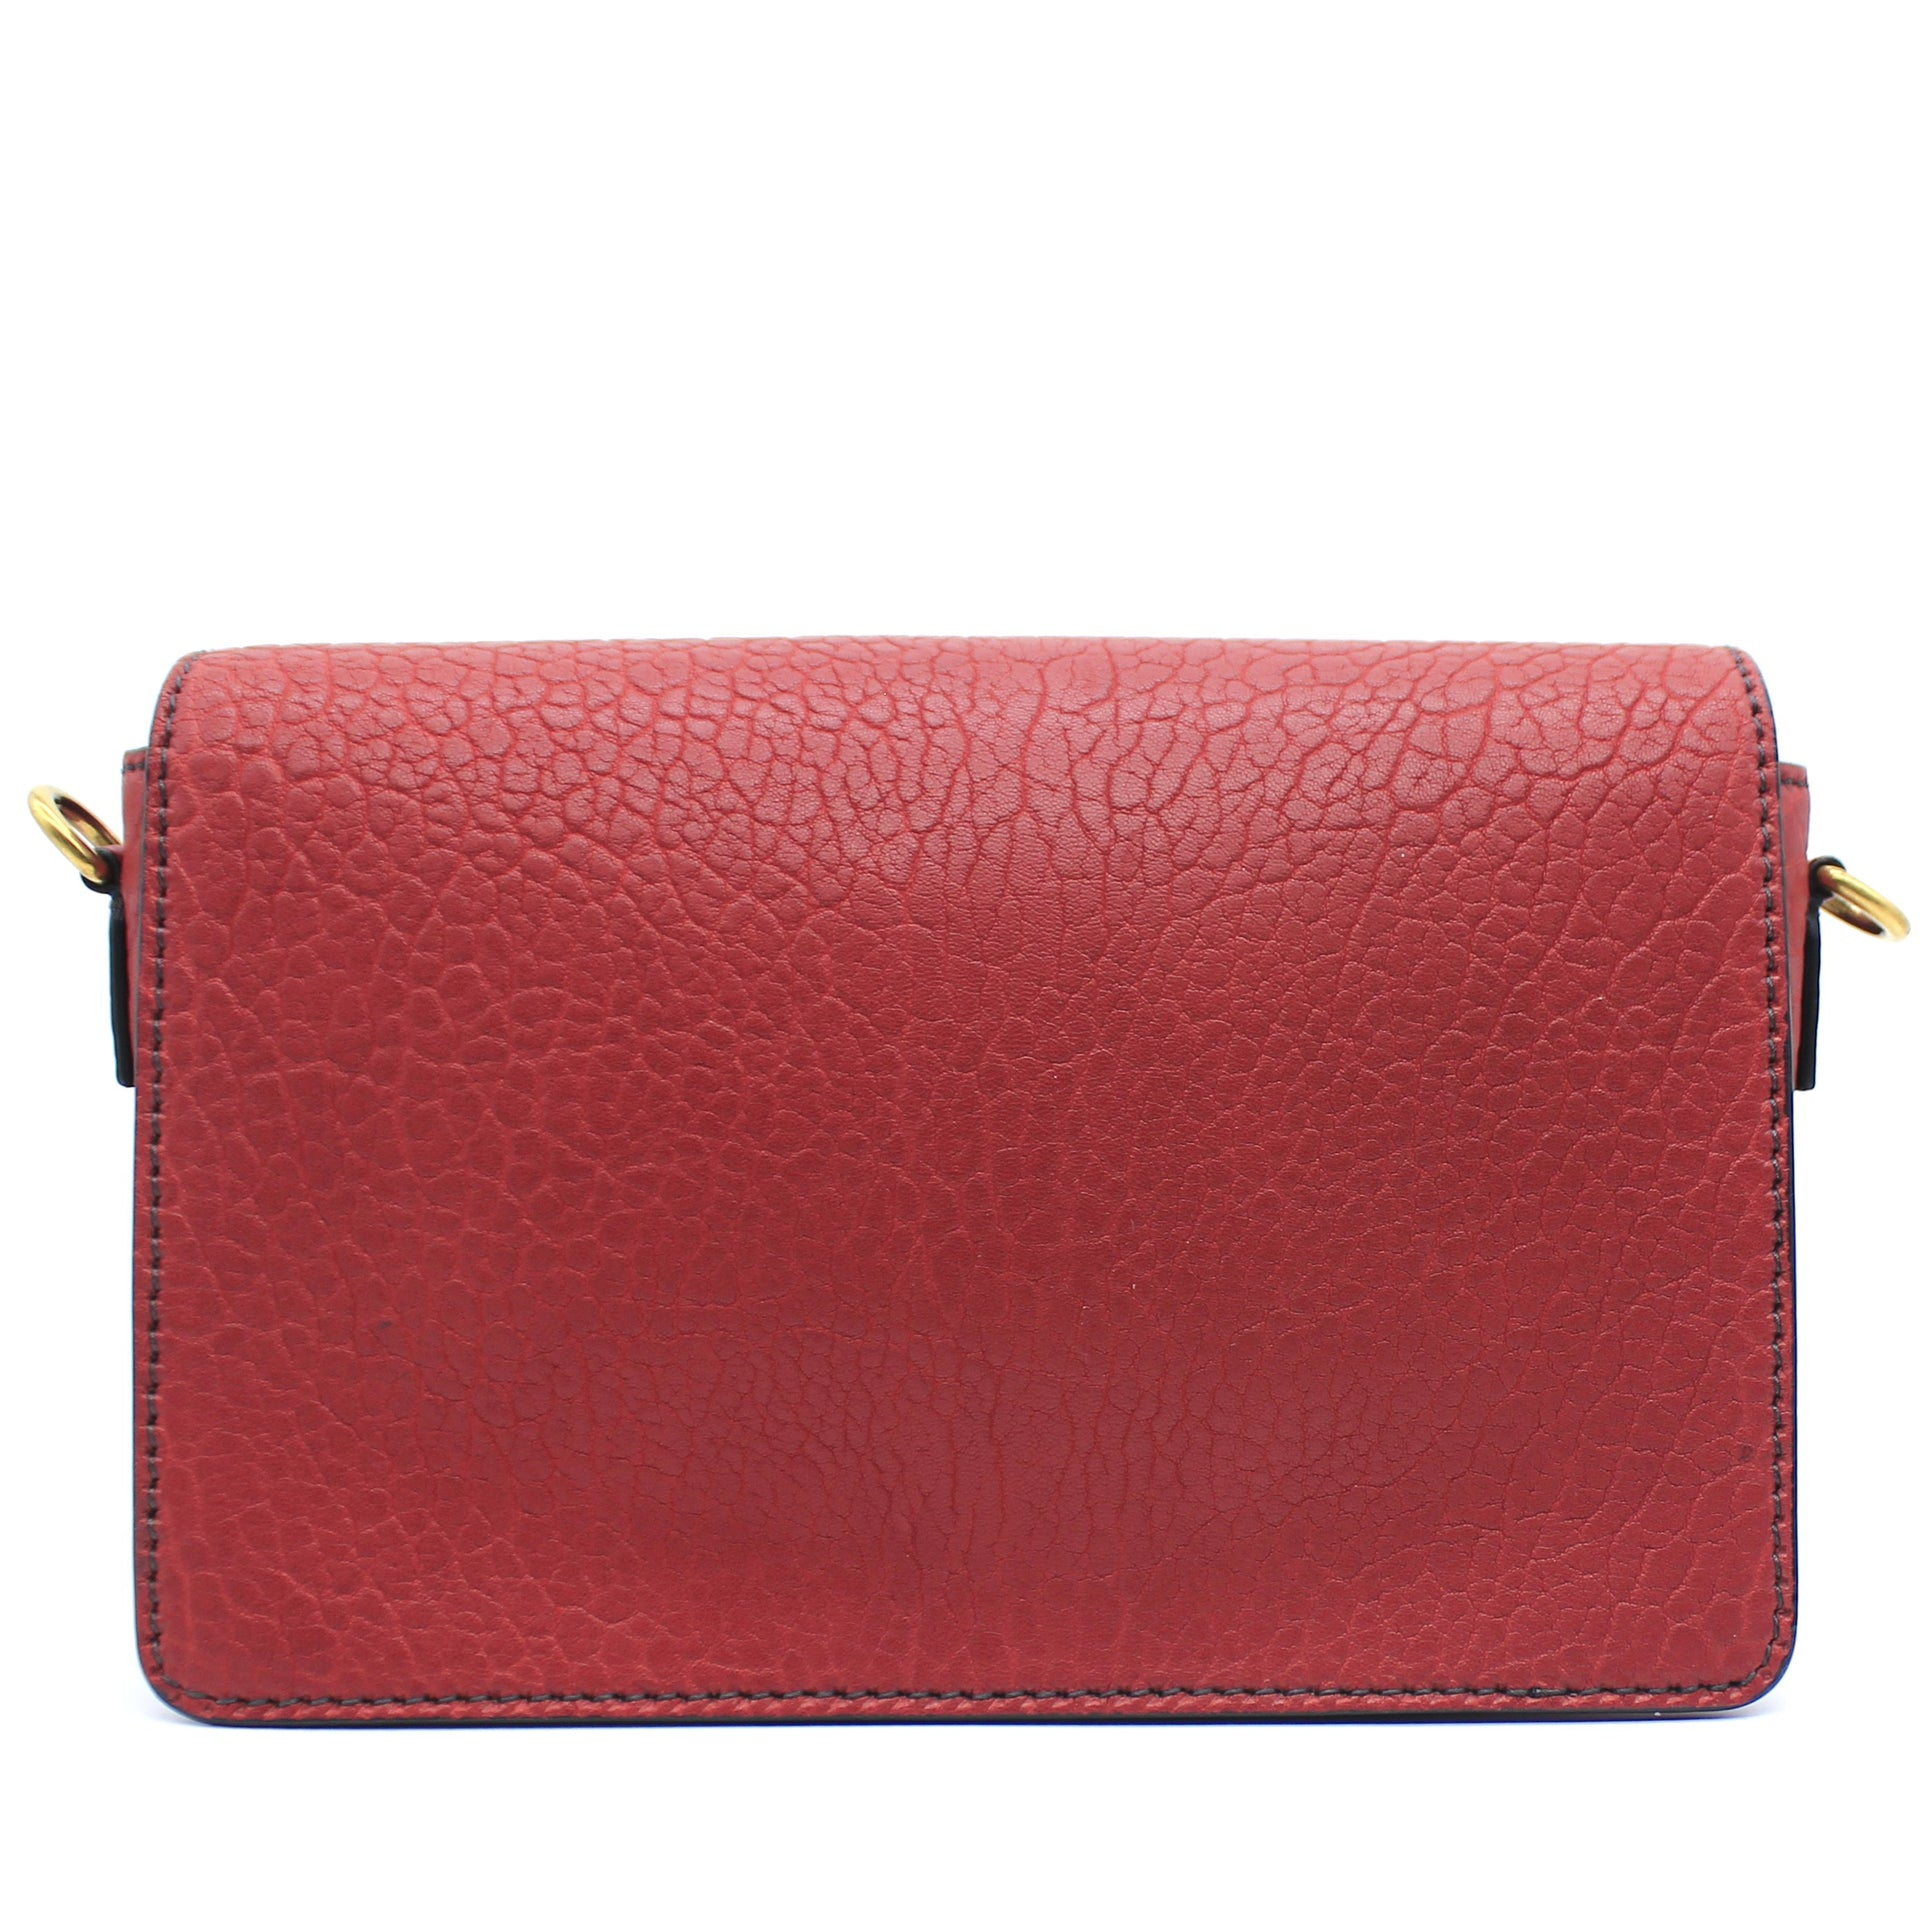 Grained Calfskin J'Adior Flap Bag Red